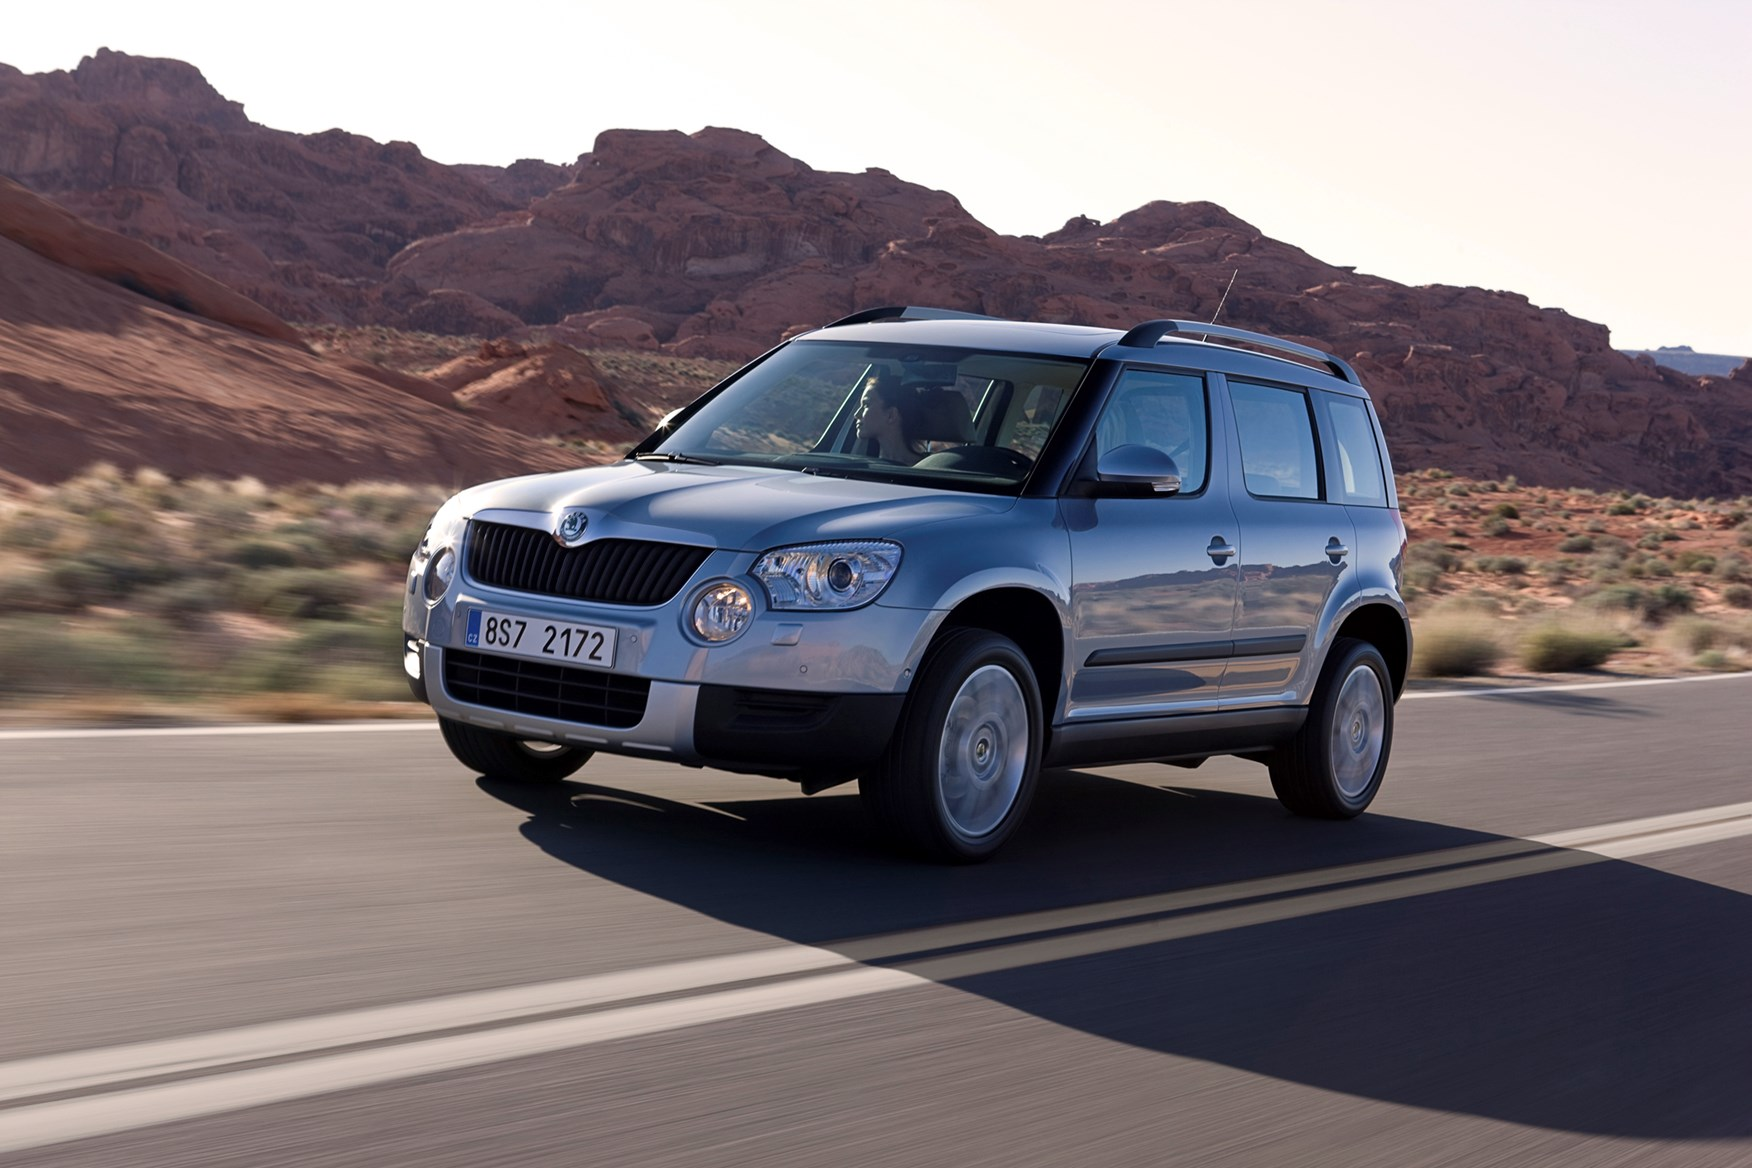 skoda yeti hatchback review 2009 2017 parkers. Black Bedroom Furniture Sets. Home Design Ideas